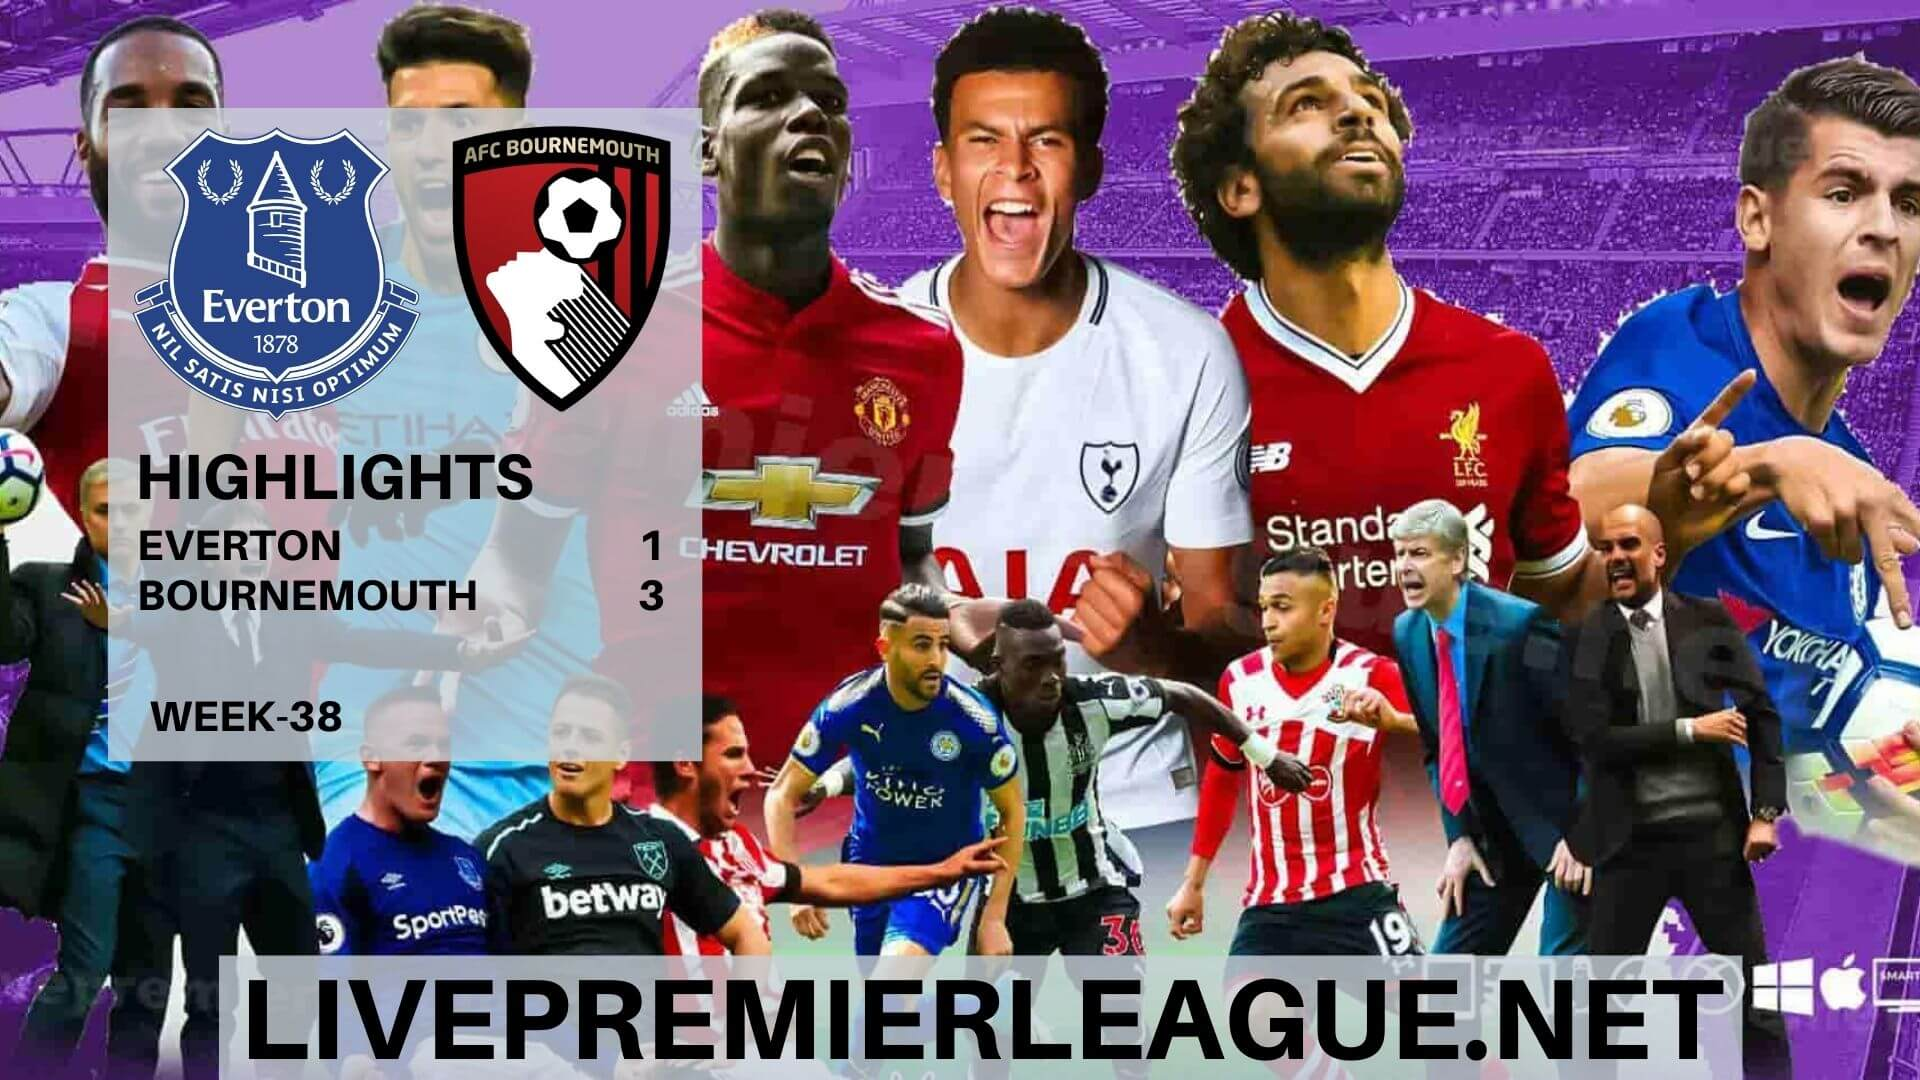 Everton Vs AFC Bournemouth Highlights 2020 EPL Week 38